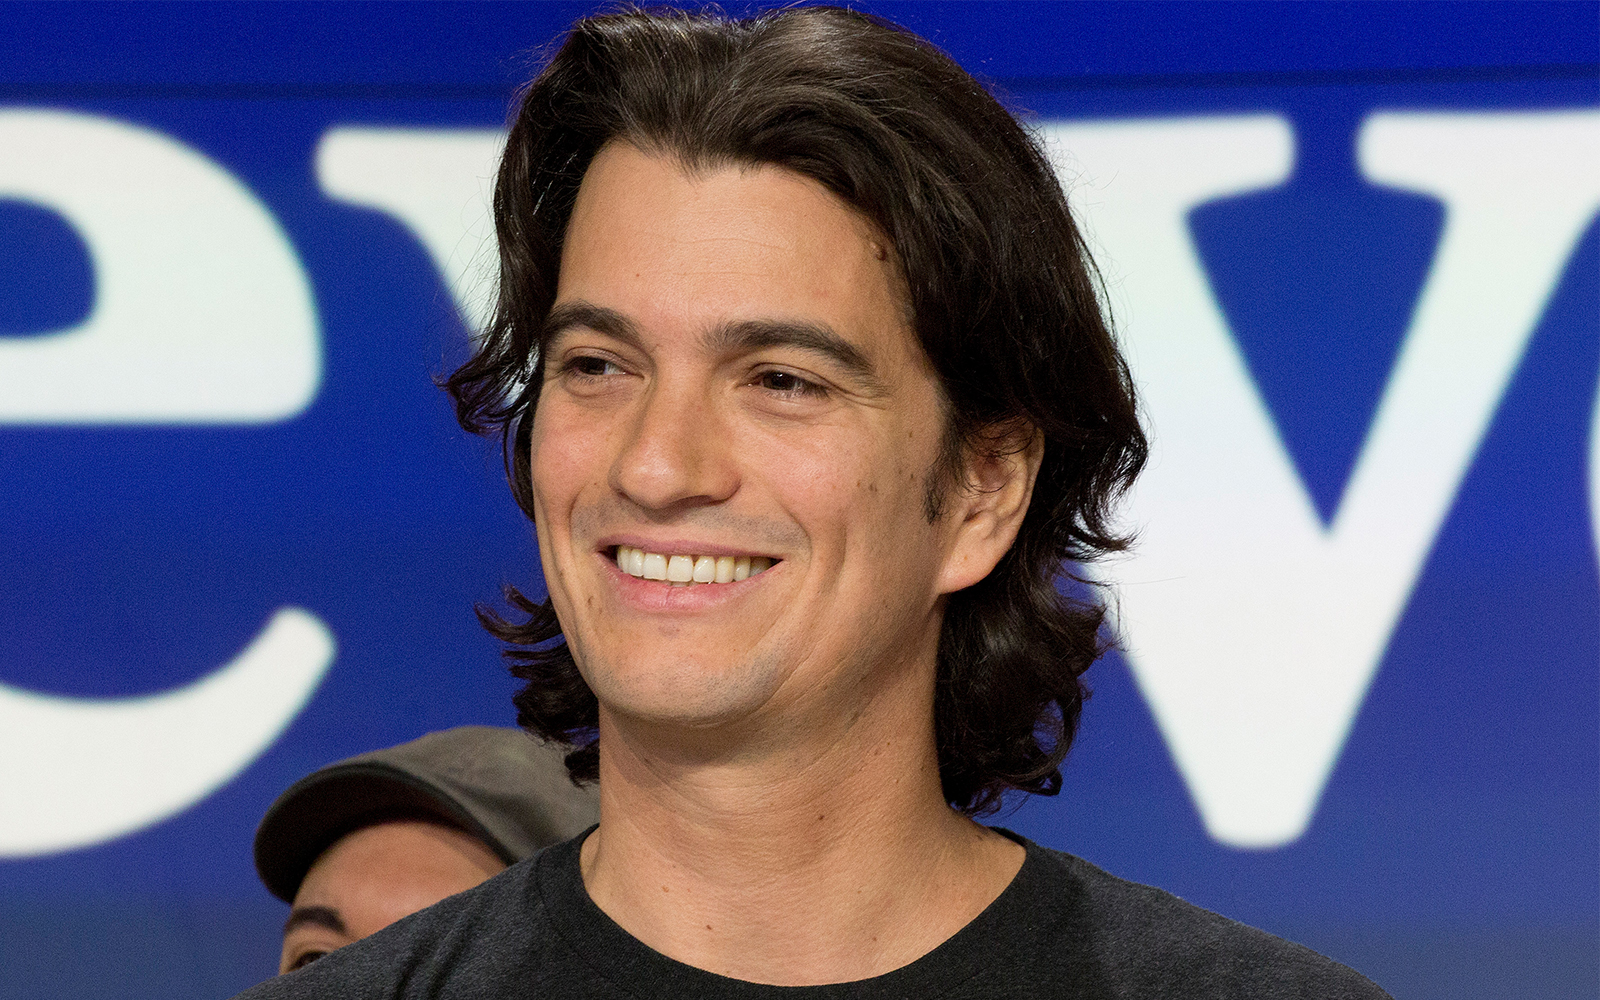 WeWork co-founder Adam Neumann stepping down as CEO